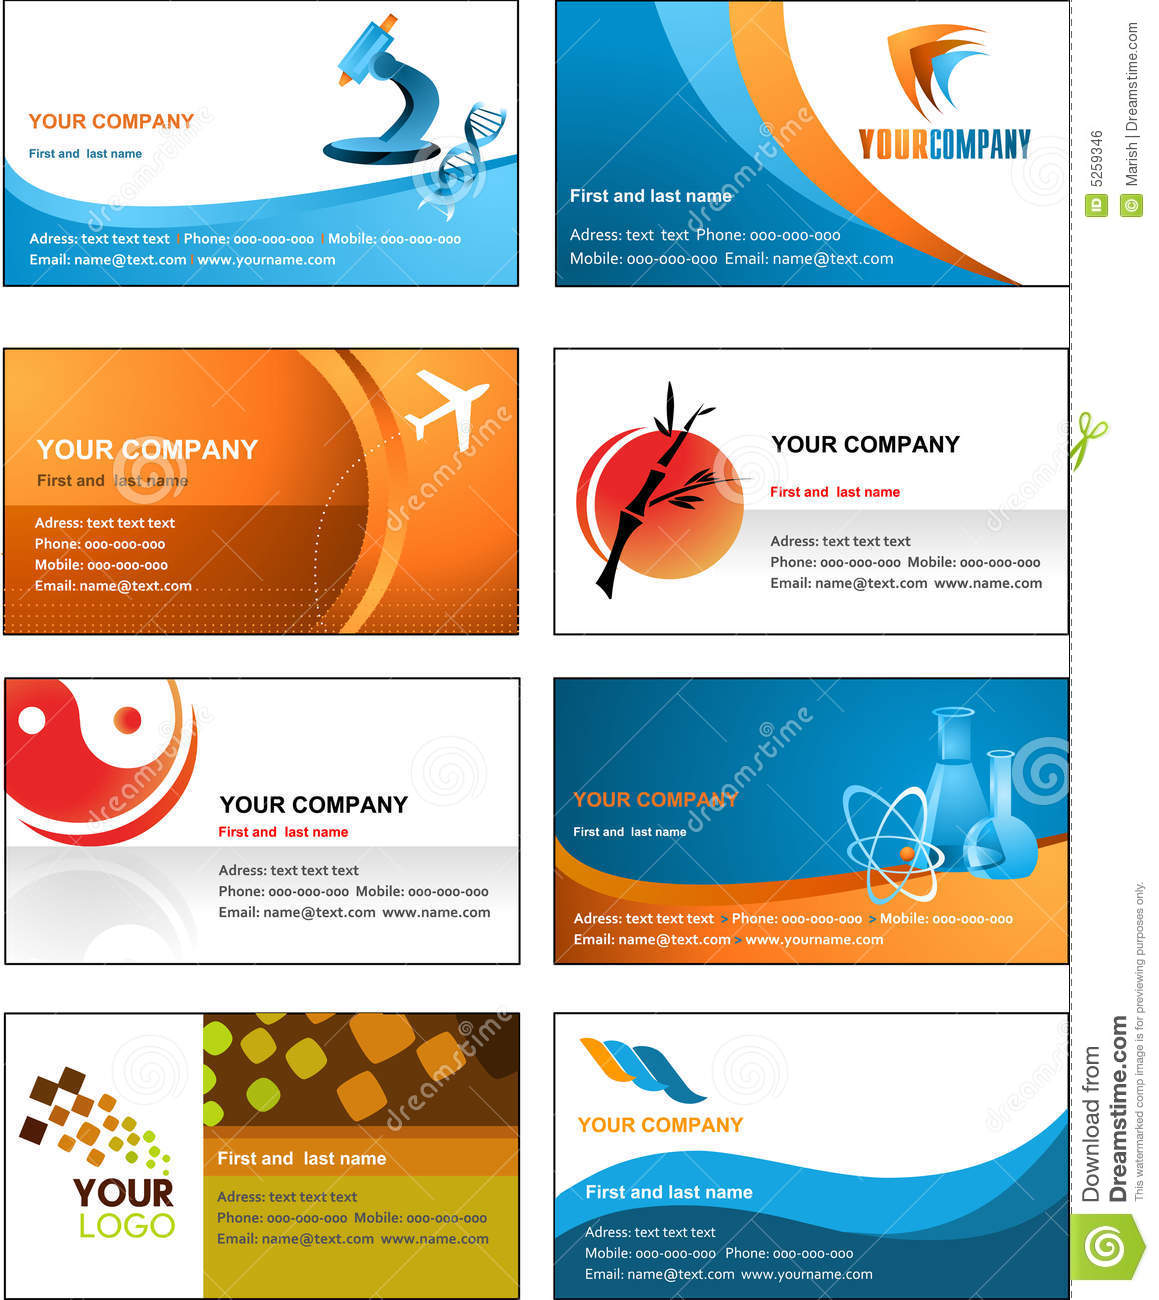 12 symbol free vector business card images free contact for Free business card design templates